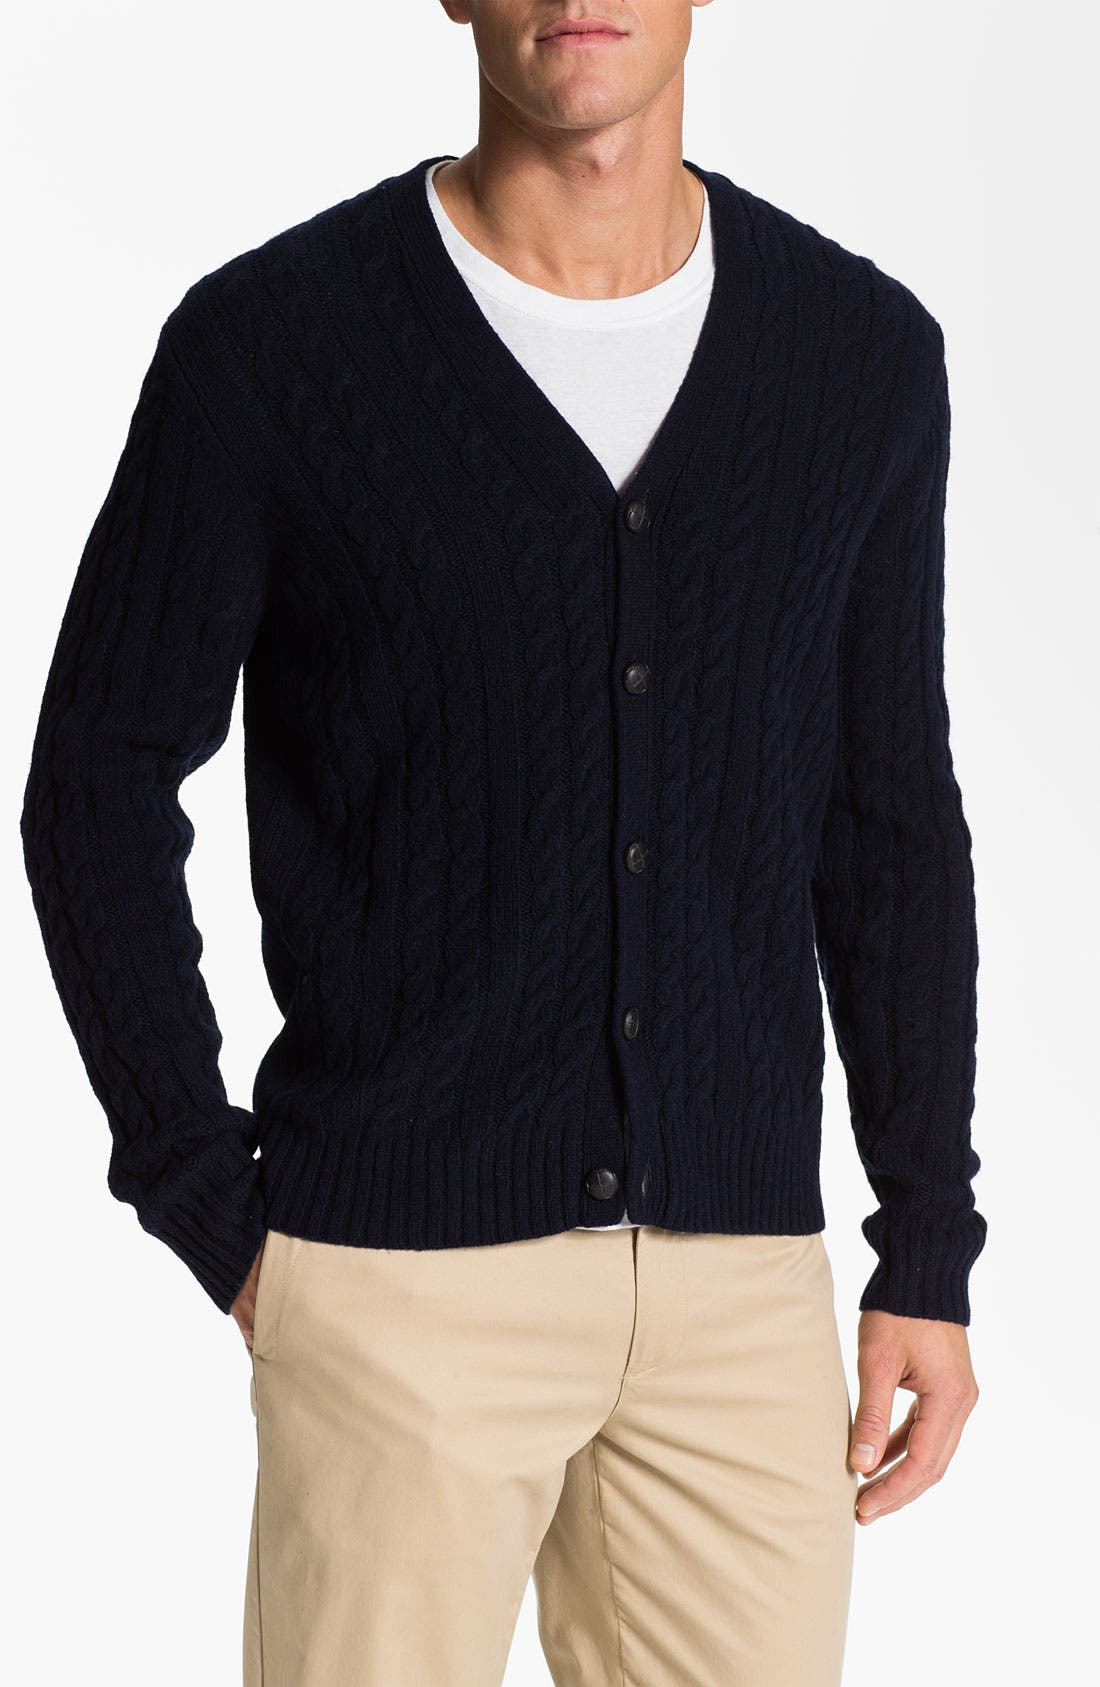 Alternate Image 1 Selected - Ben Sherman Cable Knit Cardigan